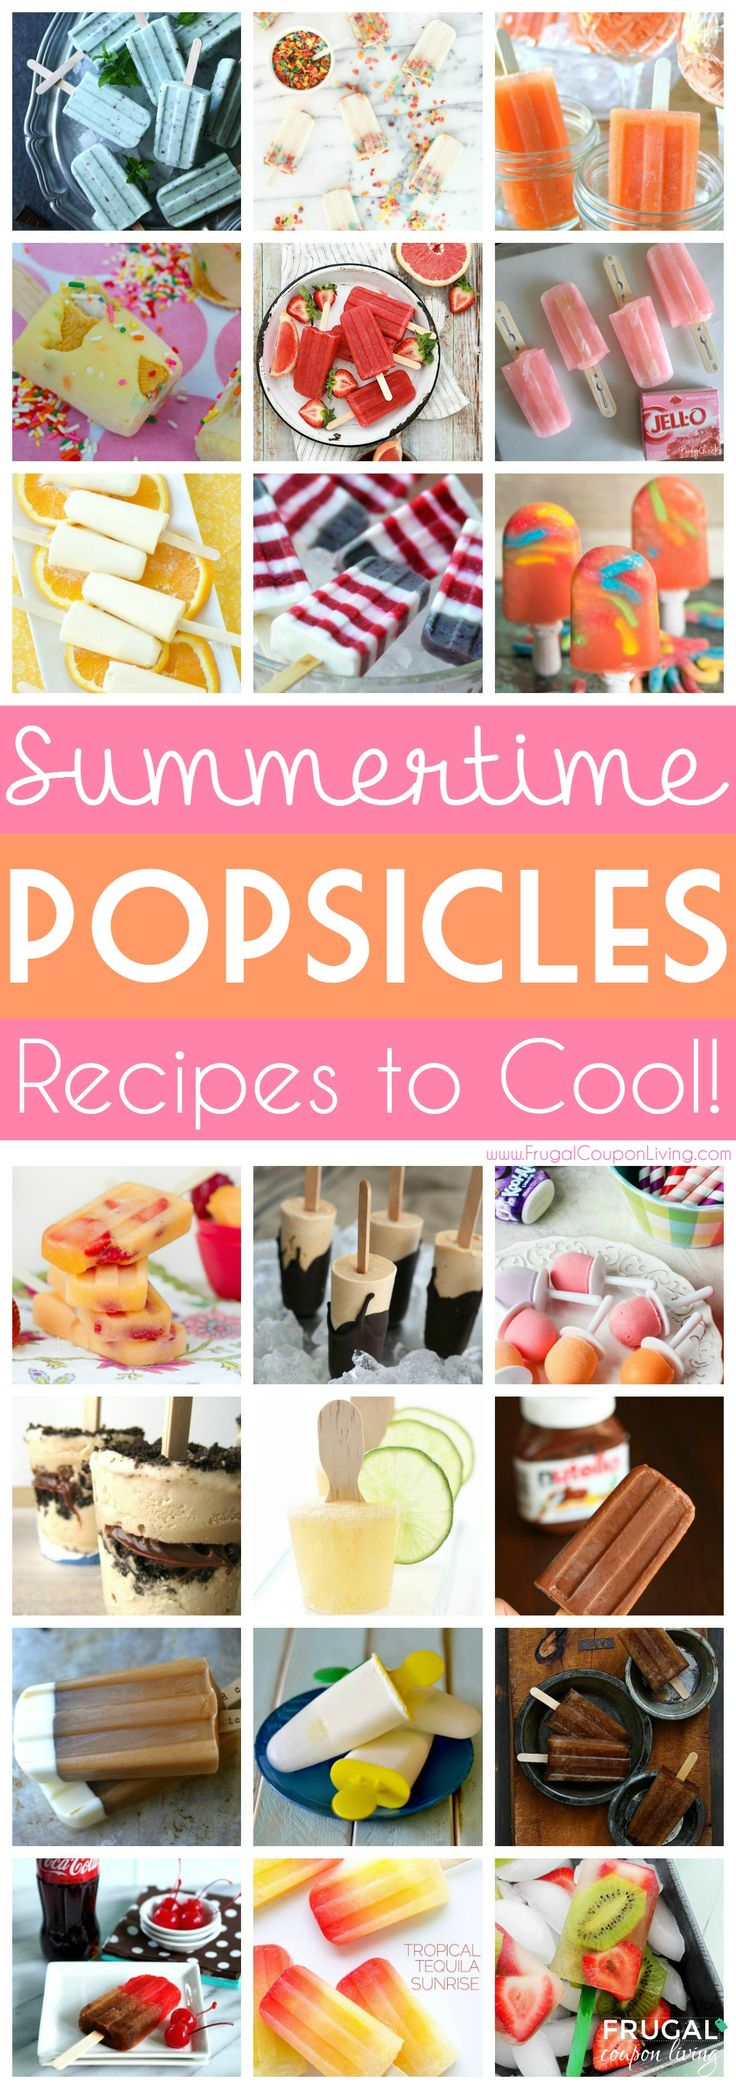 Summertime Popsicle Recipes - Cool Off Your Hot Days!